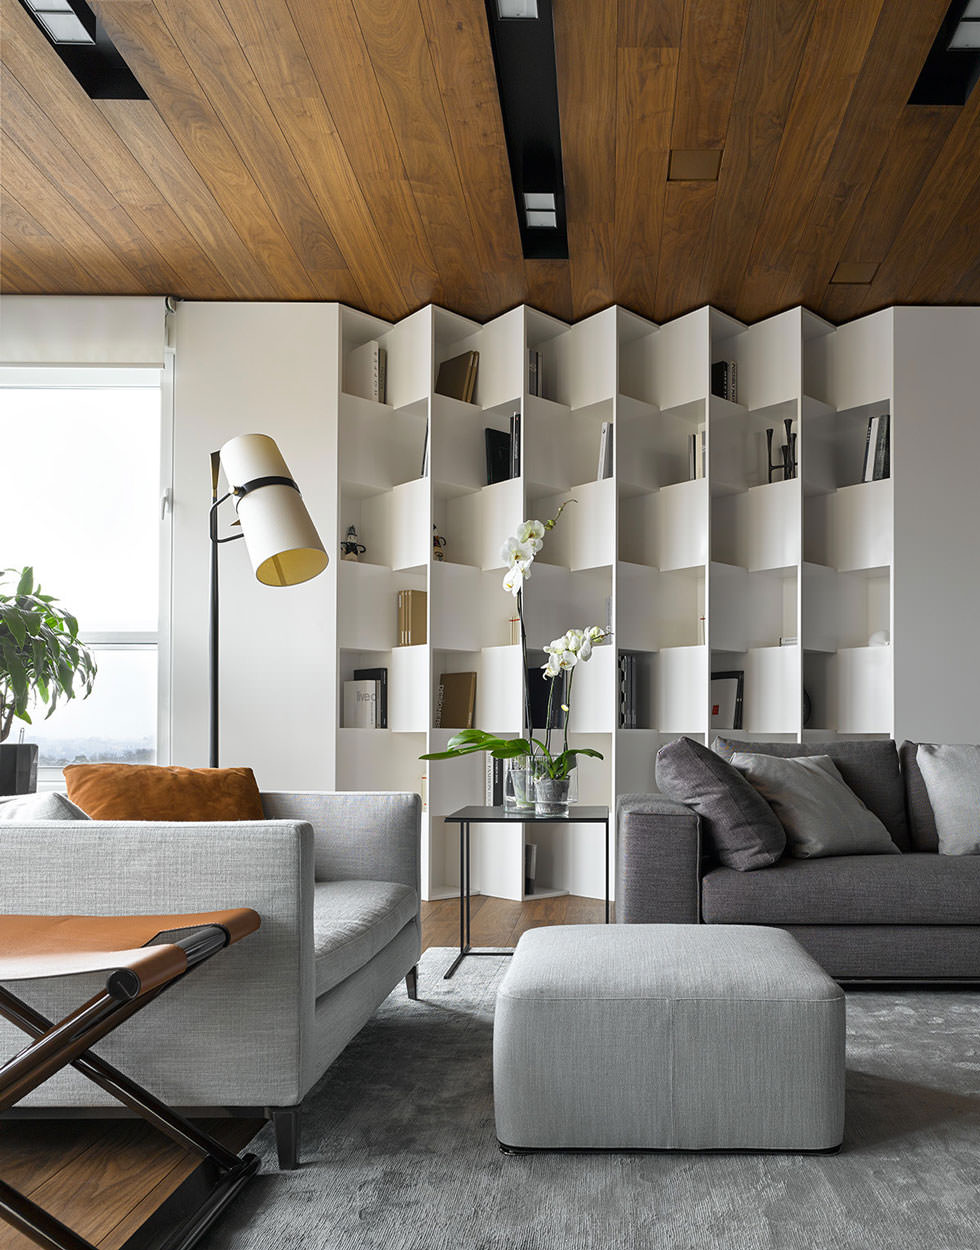 Soffitti decorati 40 idee per rendere unico il soffitto for Idee per decorare i muri di casa